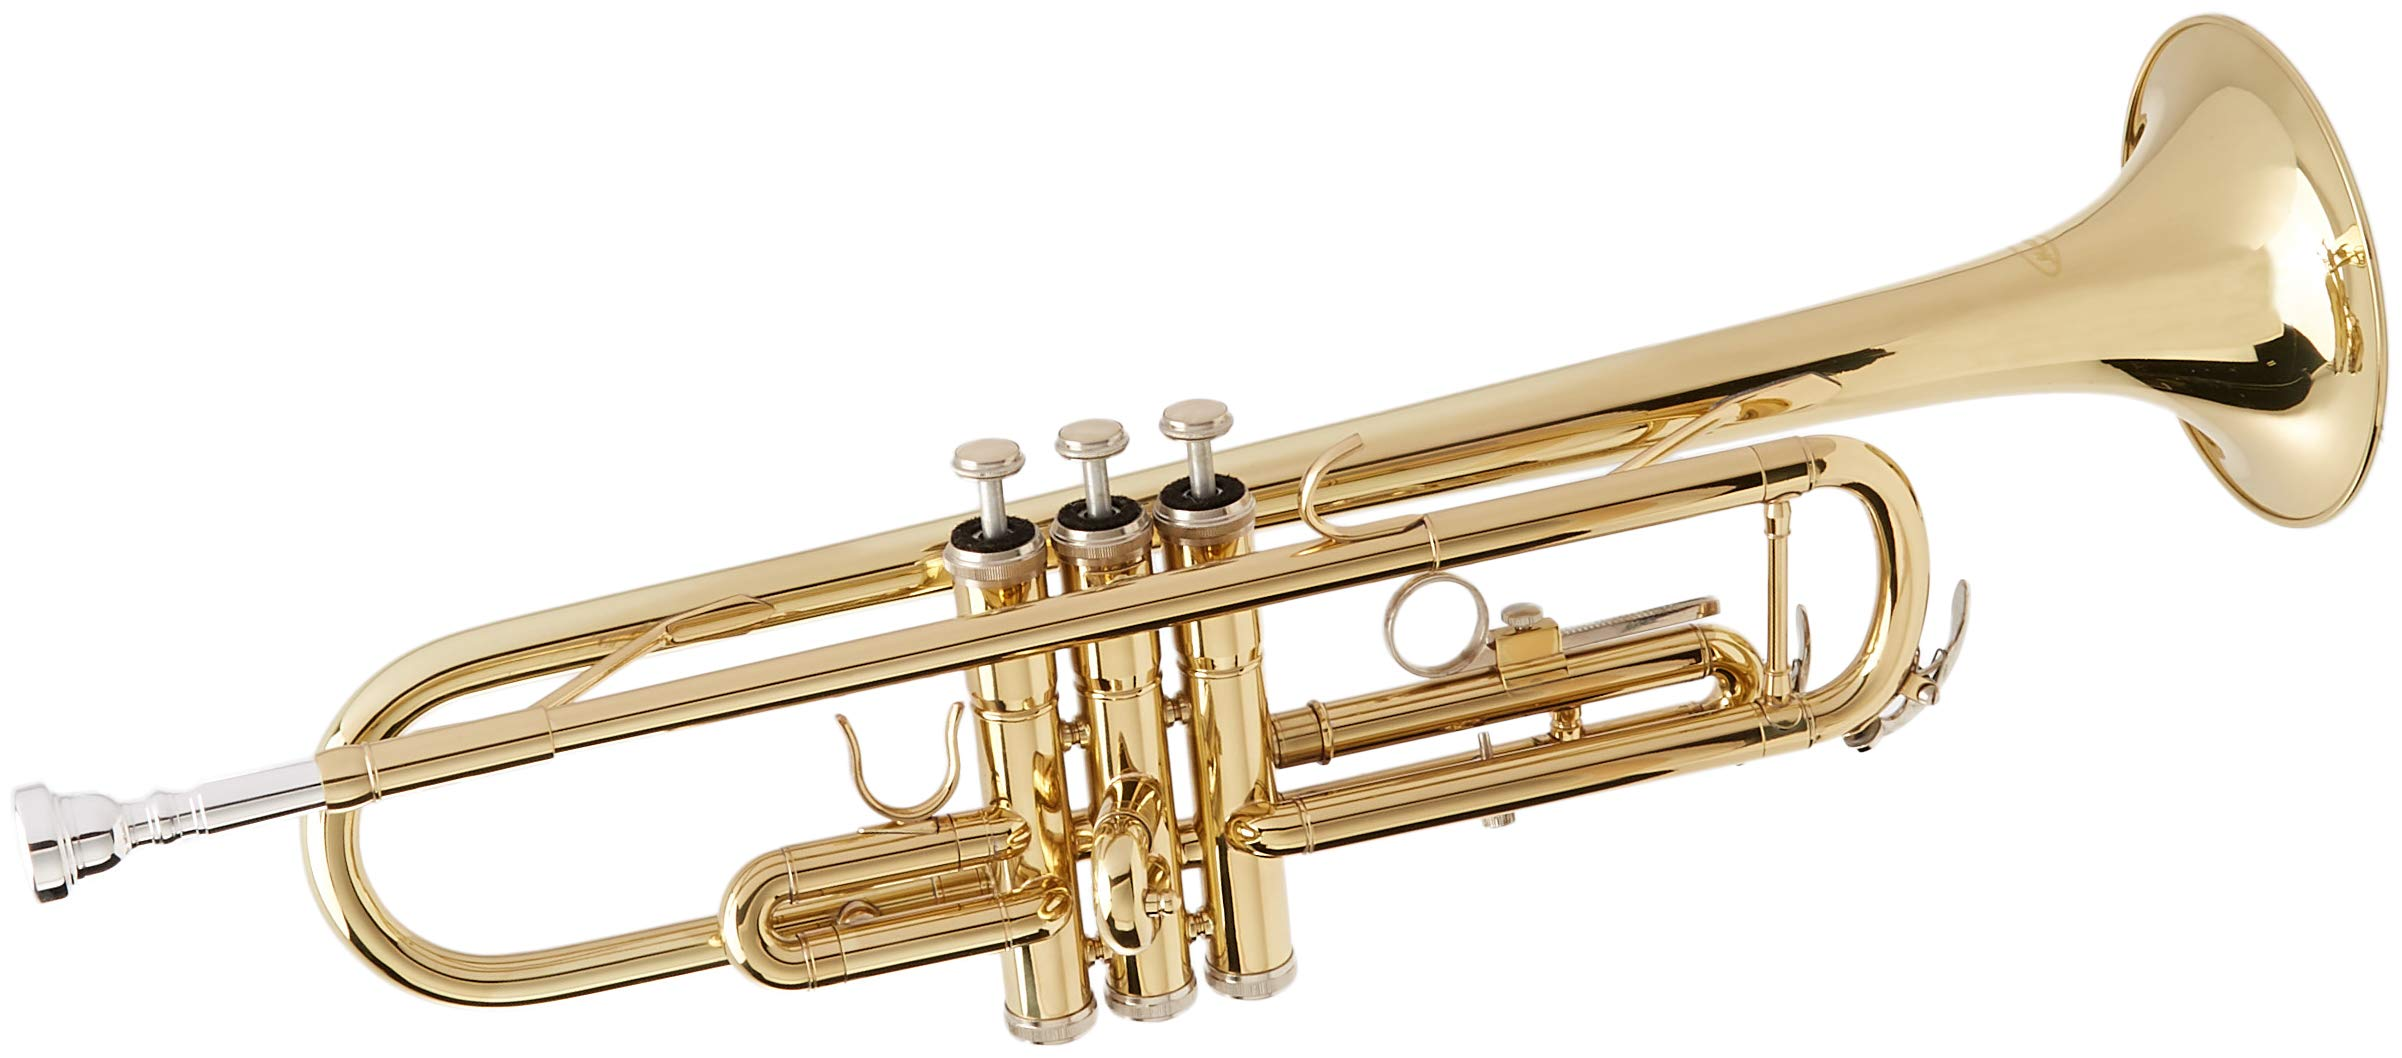 Merano ADP-65 JH B Flat GOLD/Silver Trumpet with Case+Mouth Piece+Valve Oil+Metro Tuner by Merano